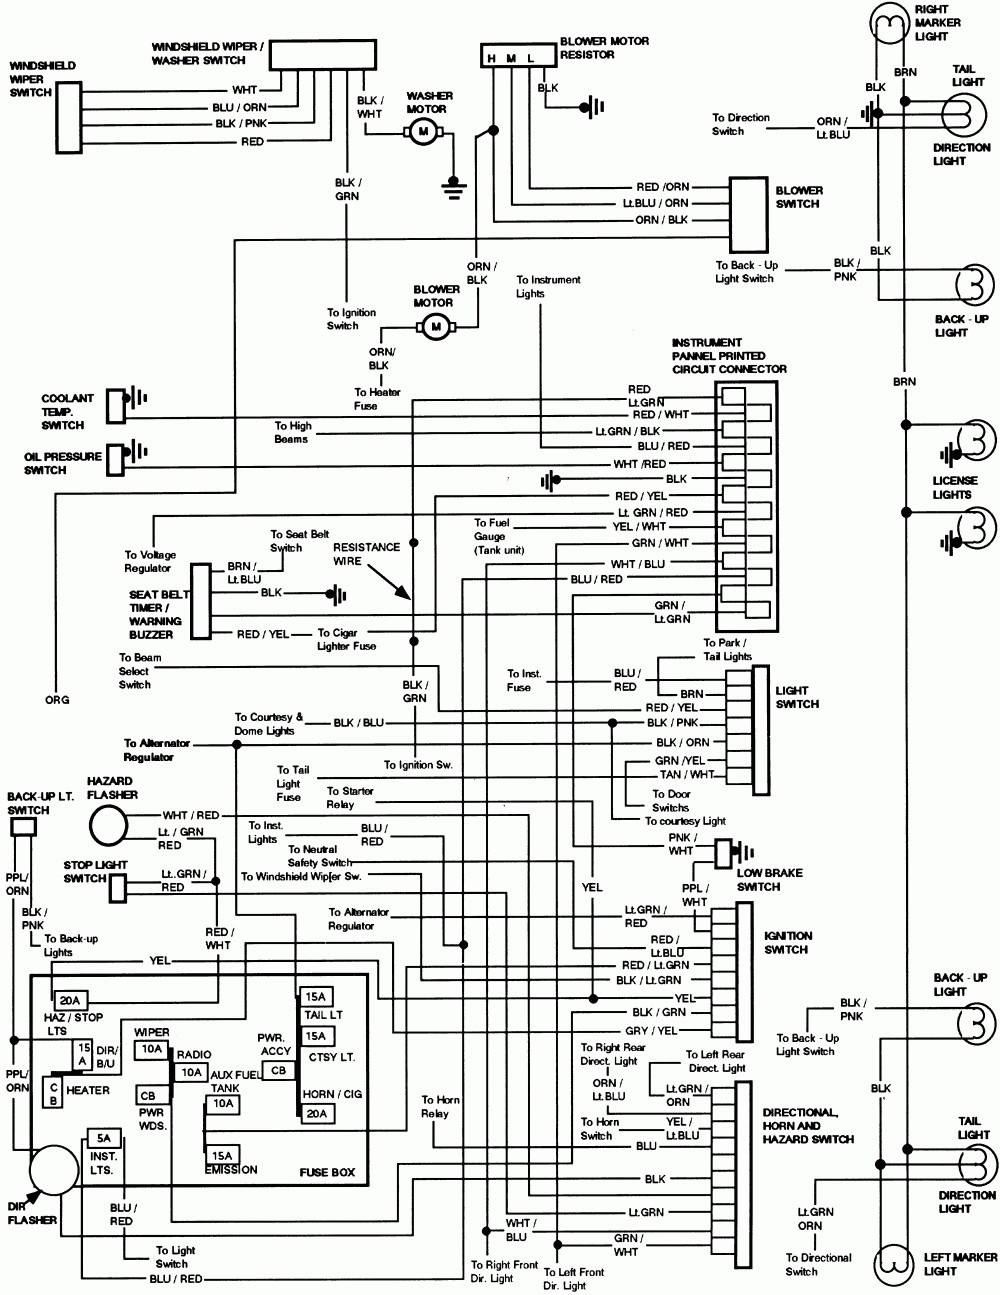 medium resolution of 73 ford f 250 ignition wiring wiring diagram sheet ford f 250 ignition wiring schema diagram